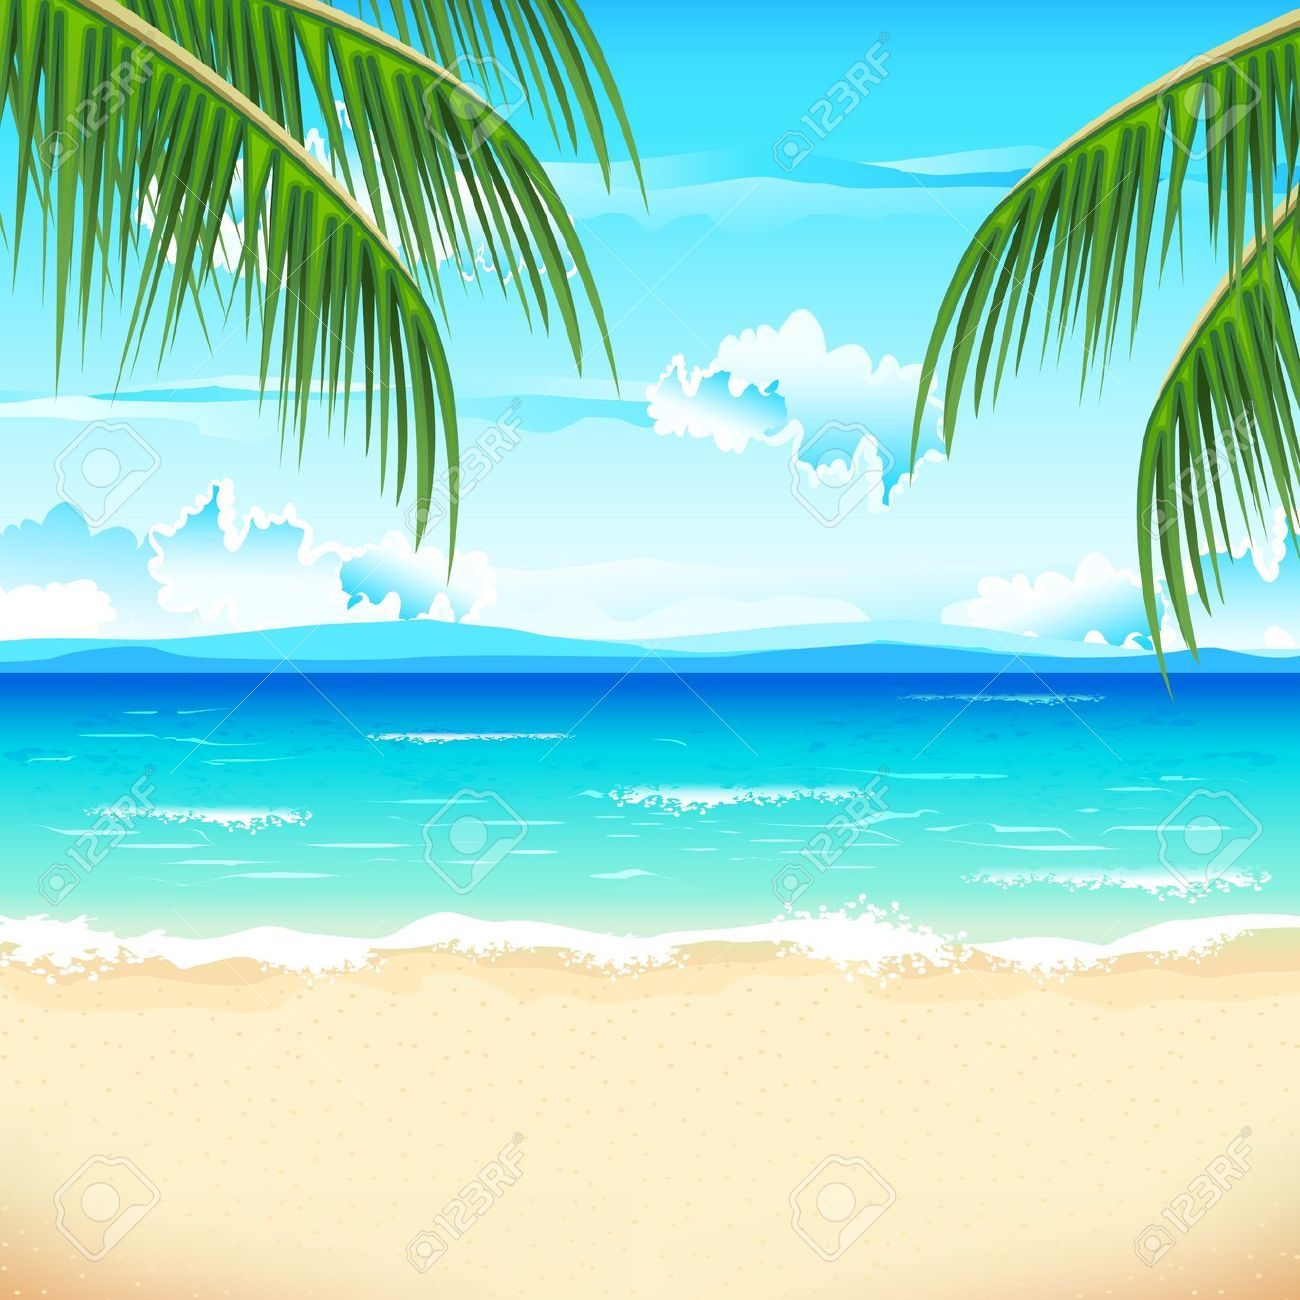 Beach background clipart free jpg royalty free stock The prices for stock photos and vector images are as low as $0 ... jpg royalty free stock